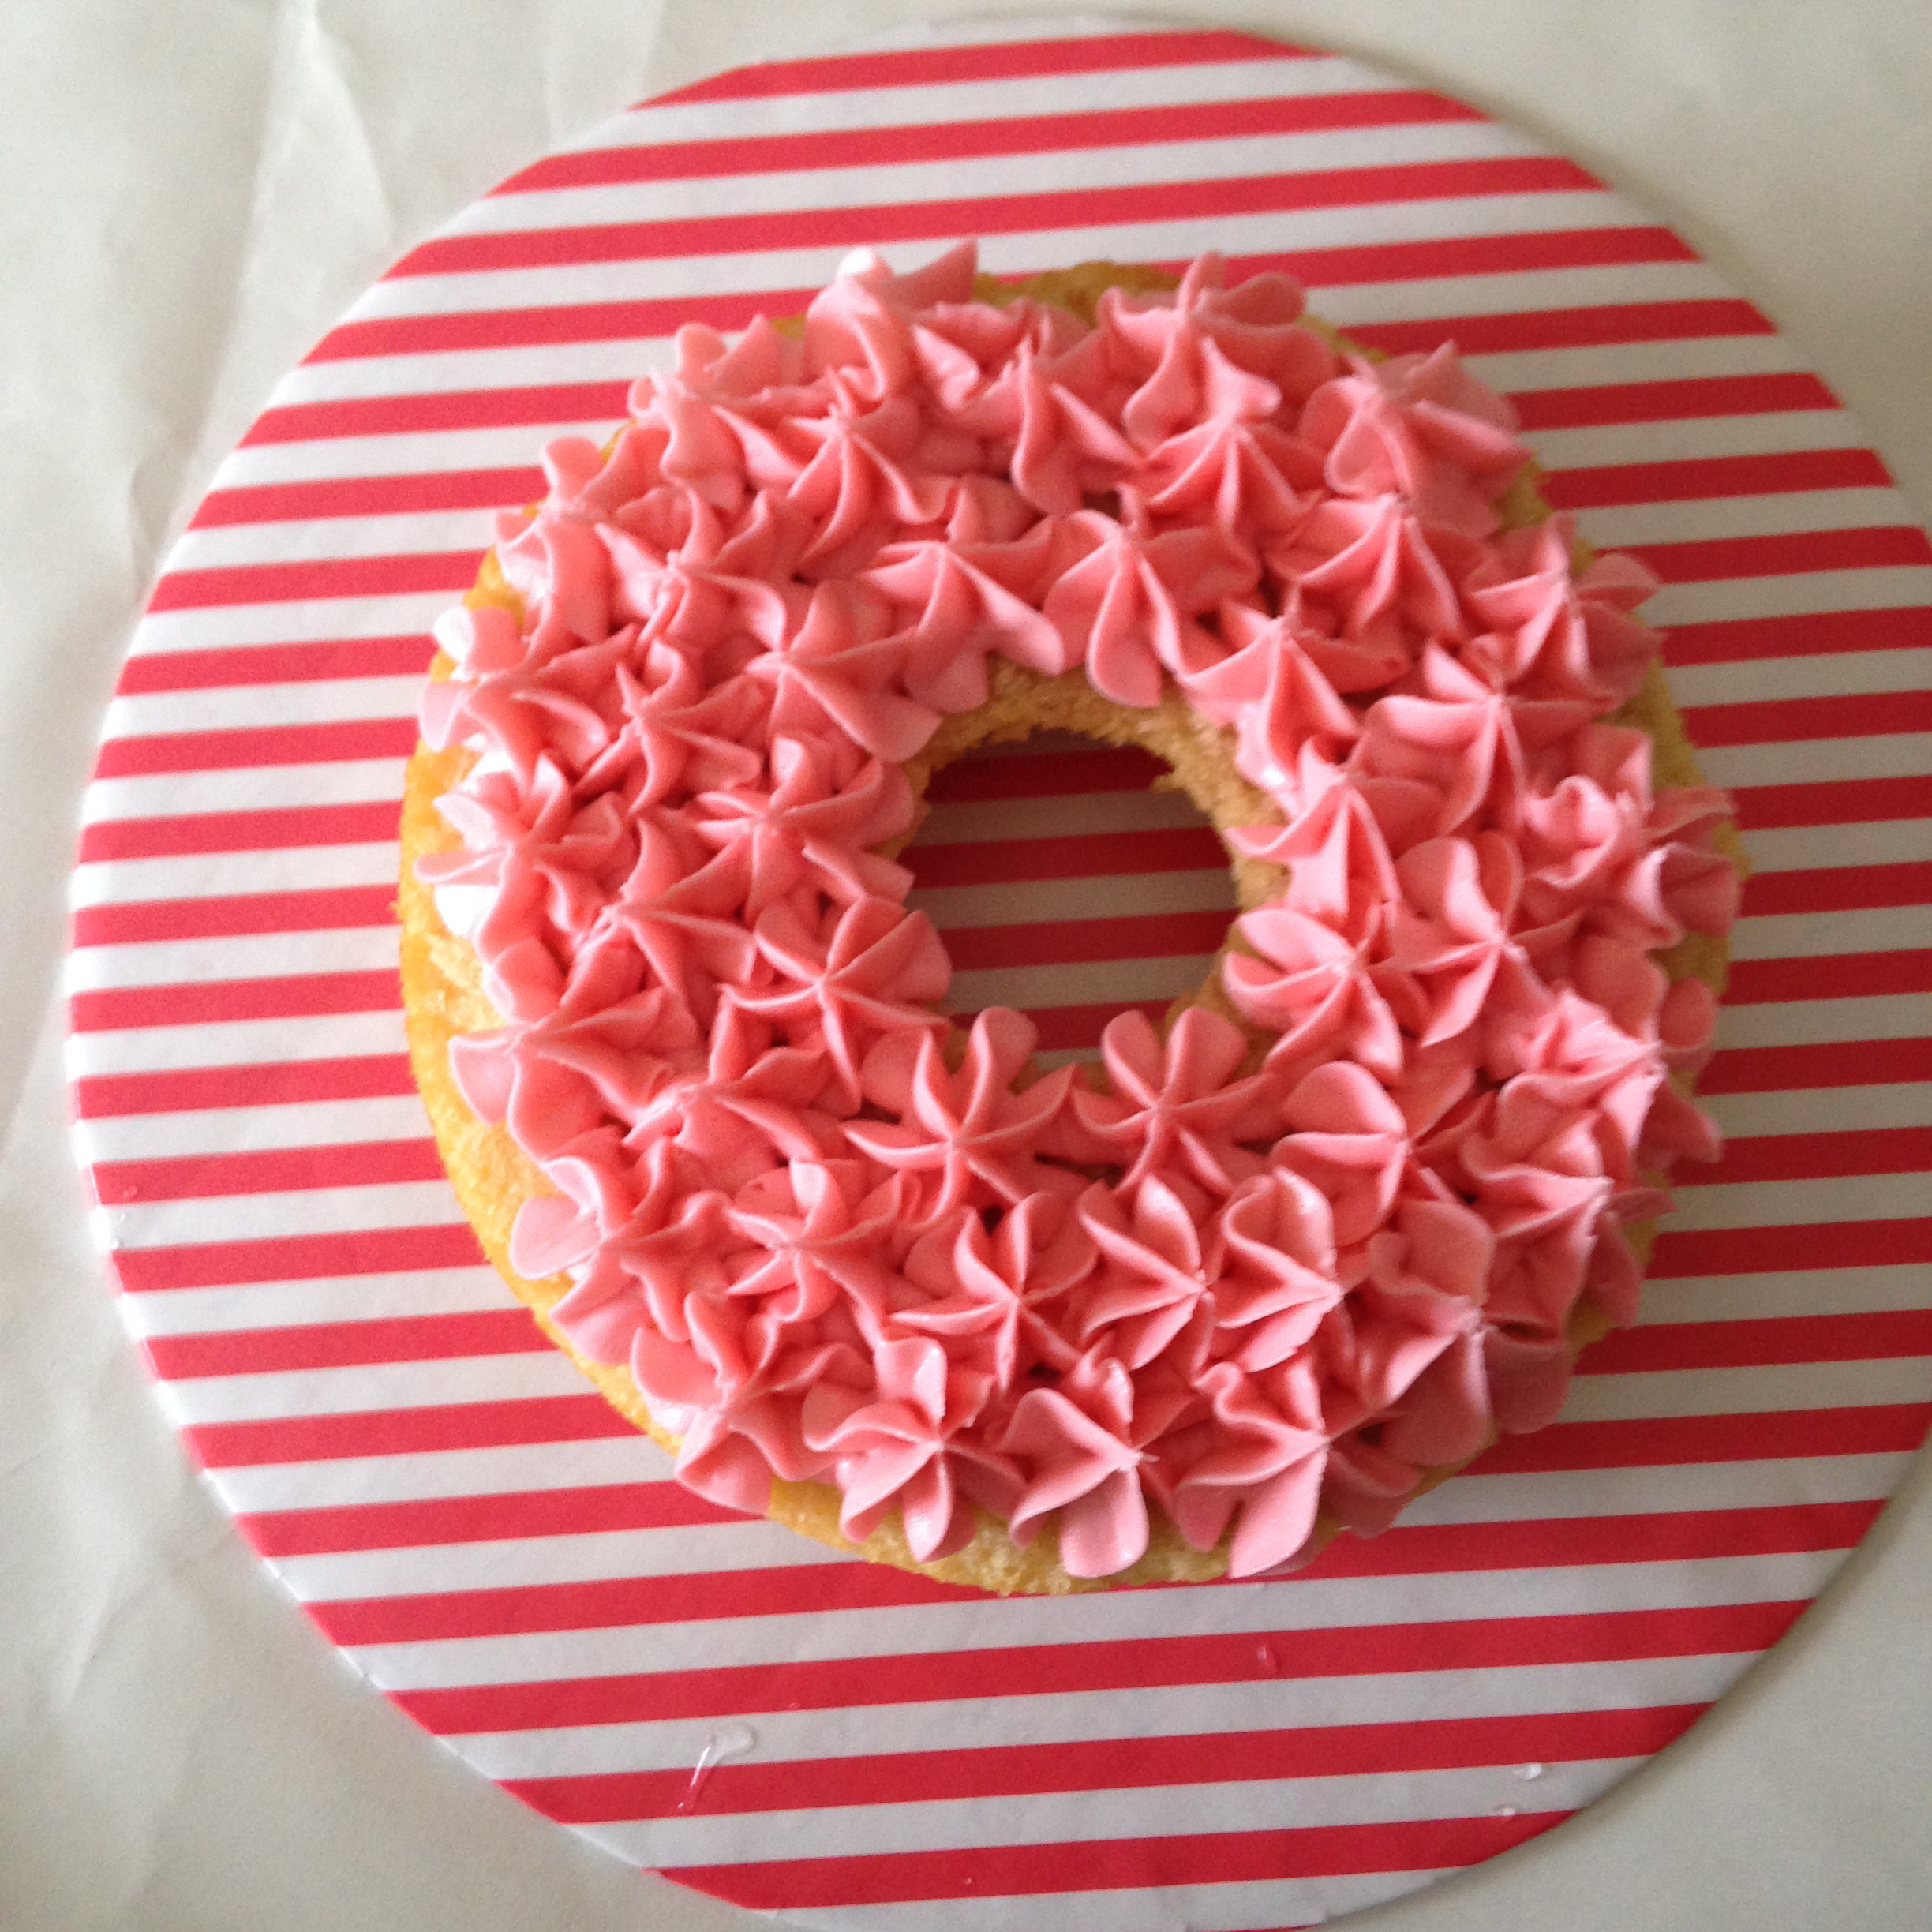 bagel with lox cake